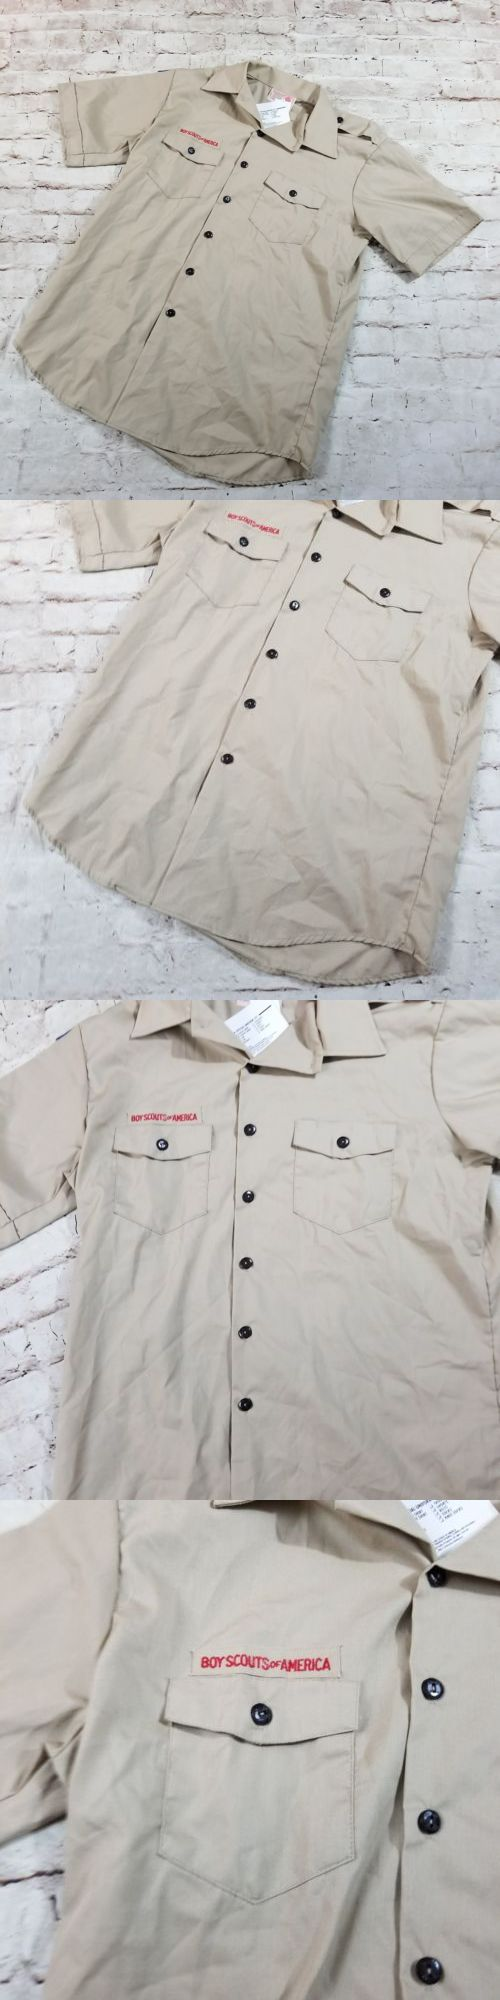 Scouting Uniforms 105418: New Men S Boy Scouts Of America Adult Large Short Sleeve Shirt Uniform Usa Made -> BUY IT NOW ONLY: $38.99 on eBay!